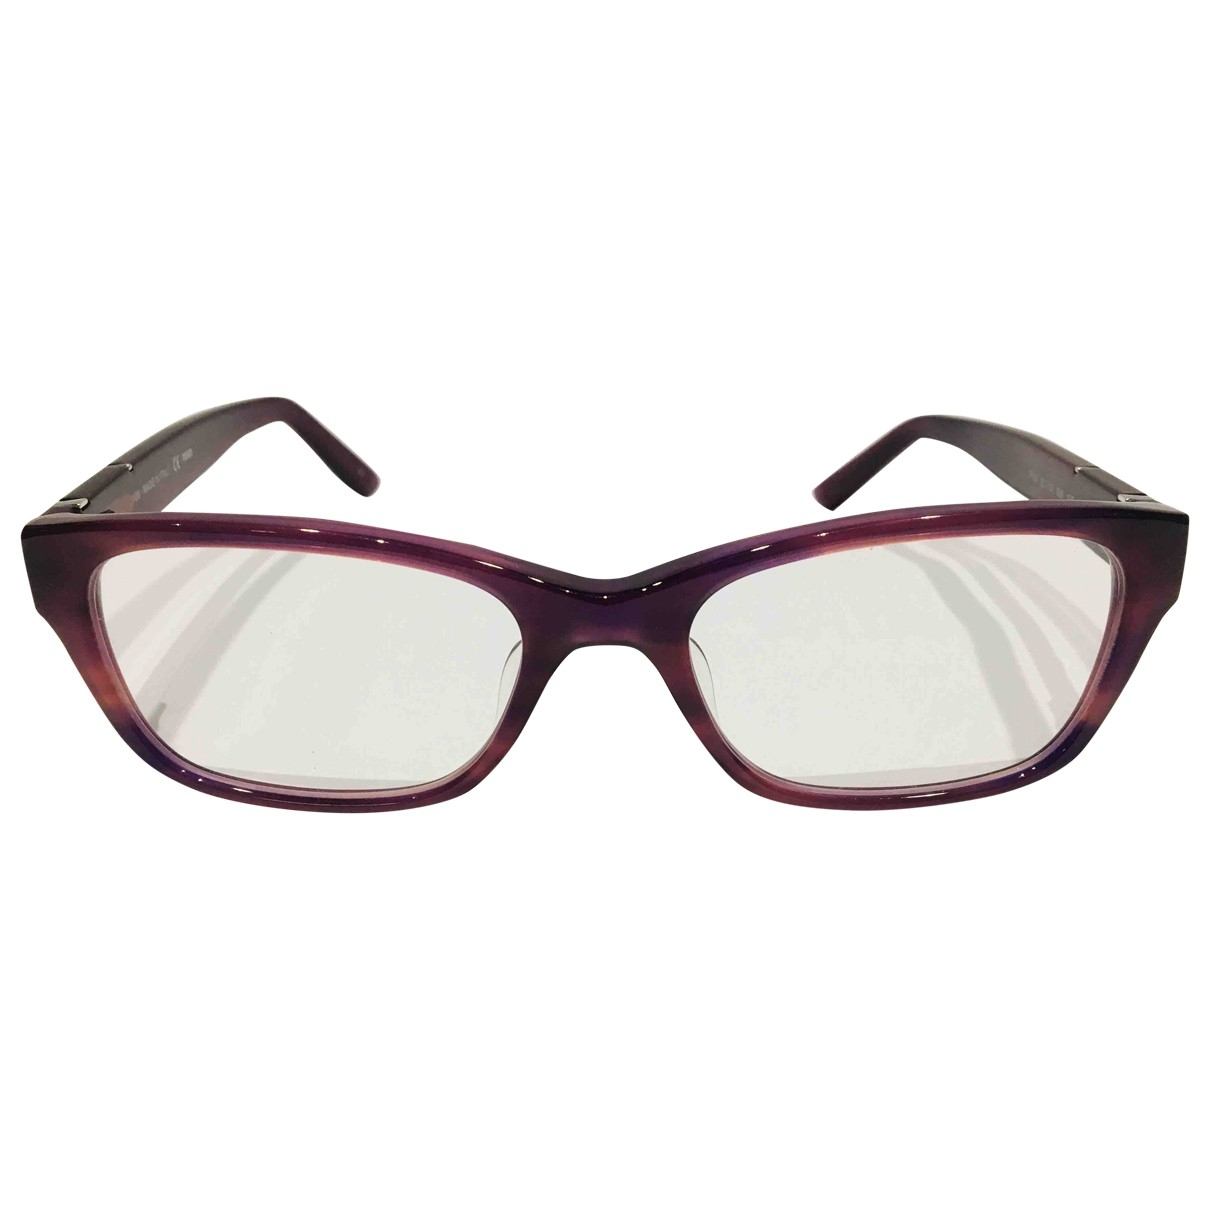 Fendi \N Burgundy Sunglasses for Women \N